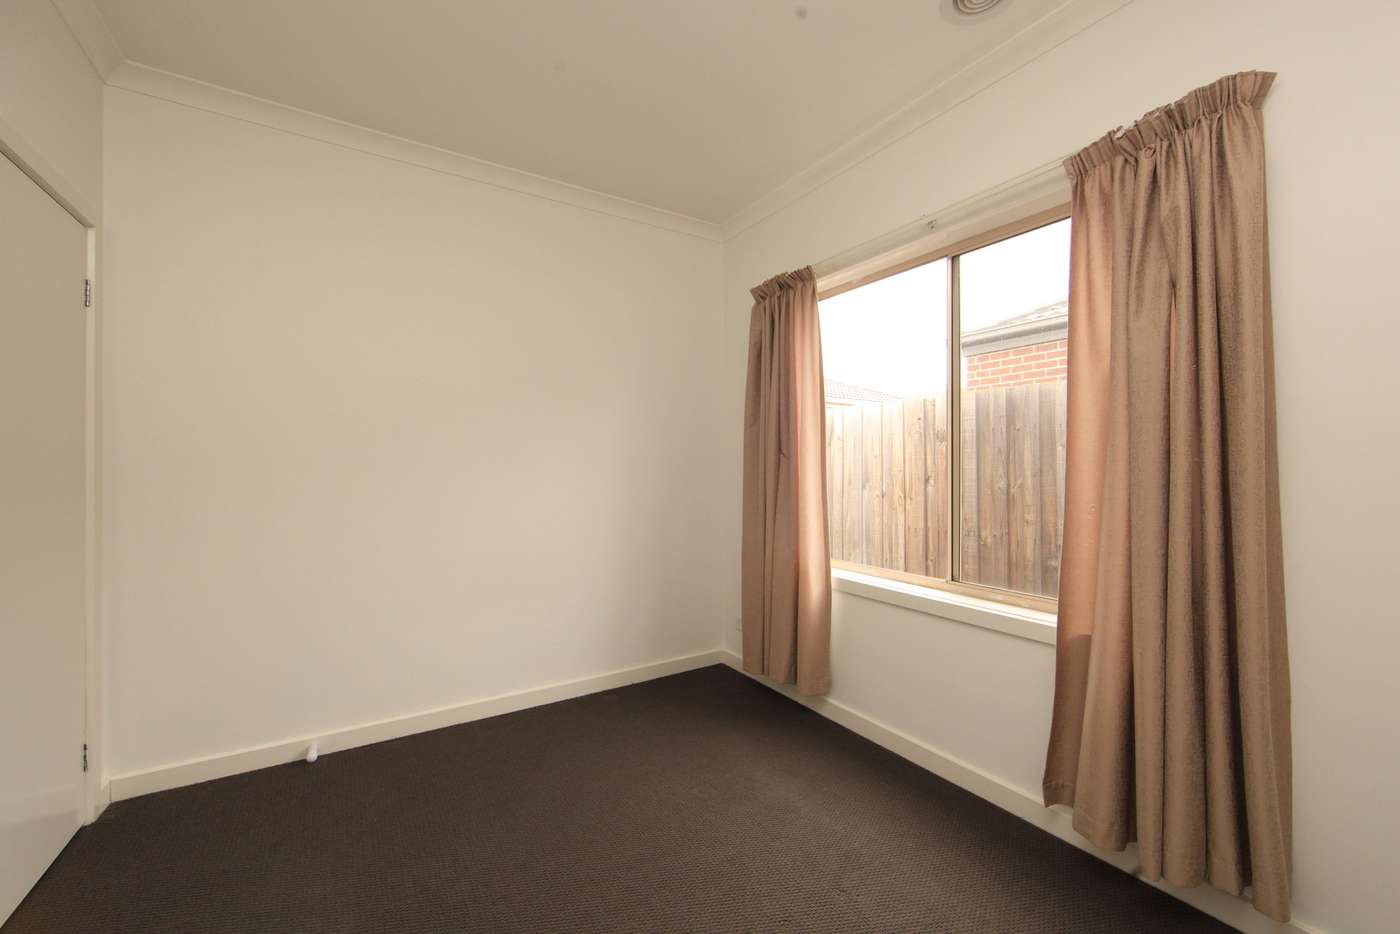 Sixth view of Homely house listing, 8 Methven Avenue, South Morang VIC 3752